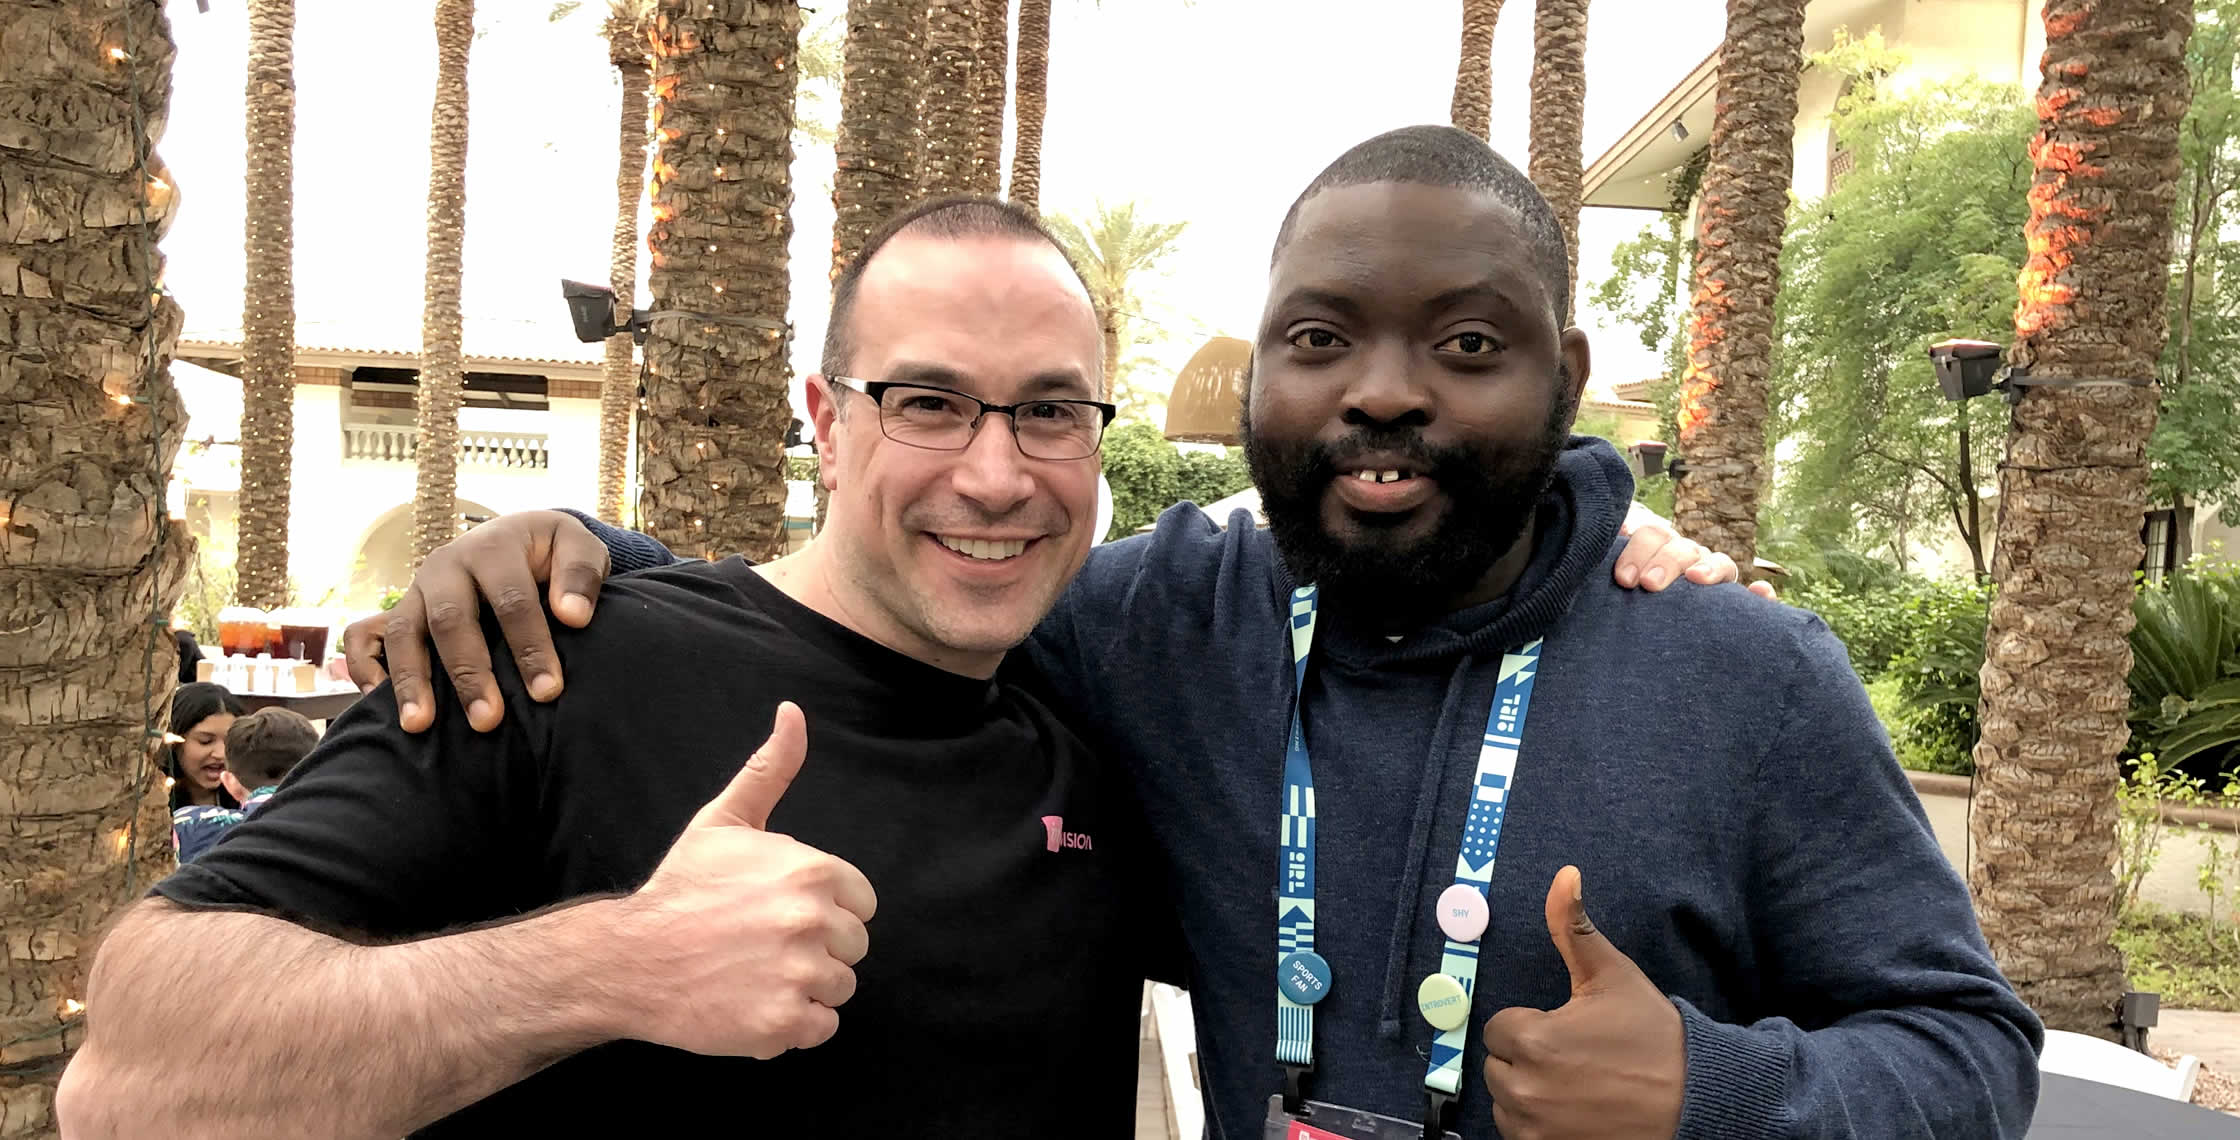 Ben Nadel at InVision In Real Life (IRL) 2019 (Phoenix, AZ) with: Azeez Olaniran